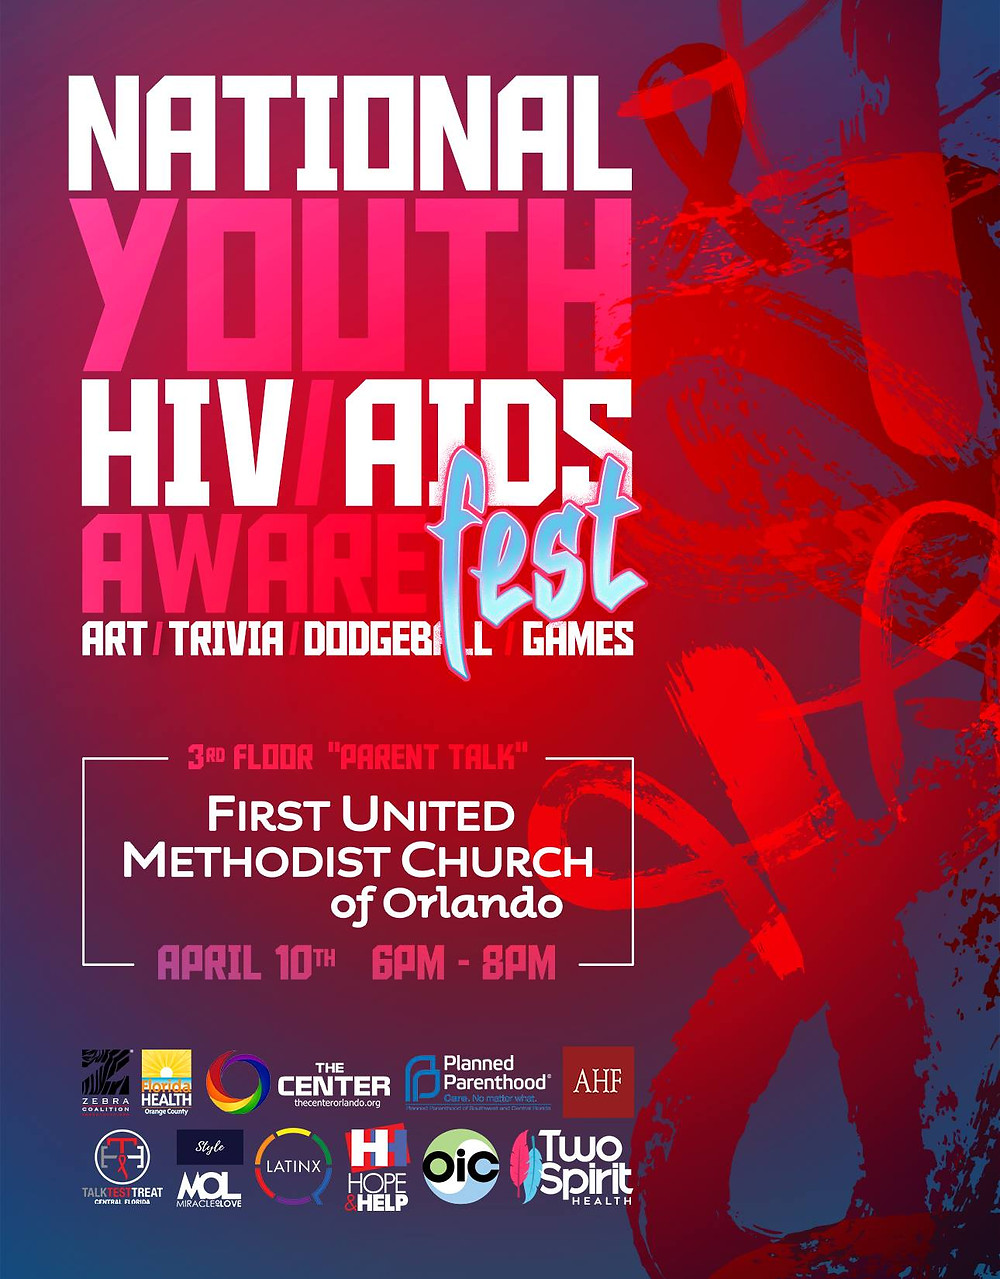 National Youth HIV/AIDS Aware Fest Flyer